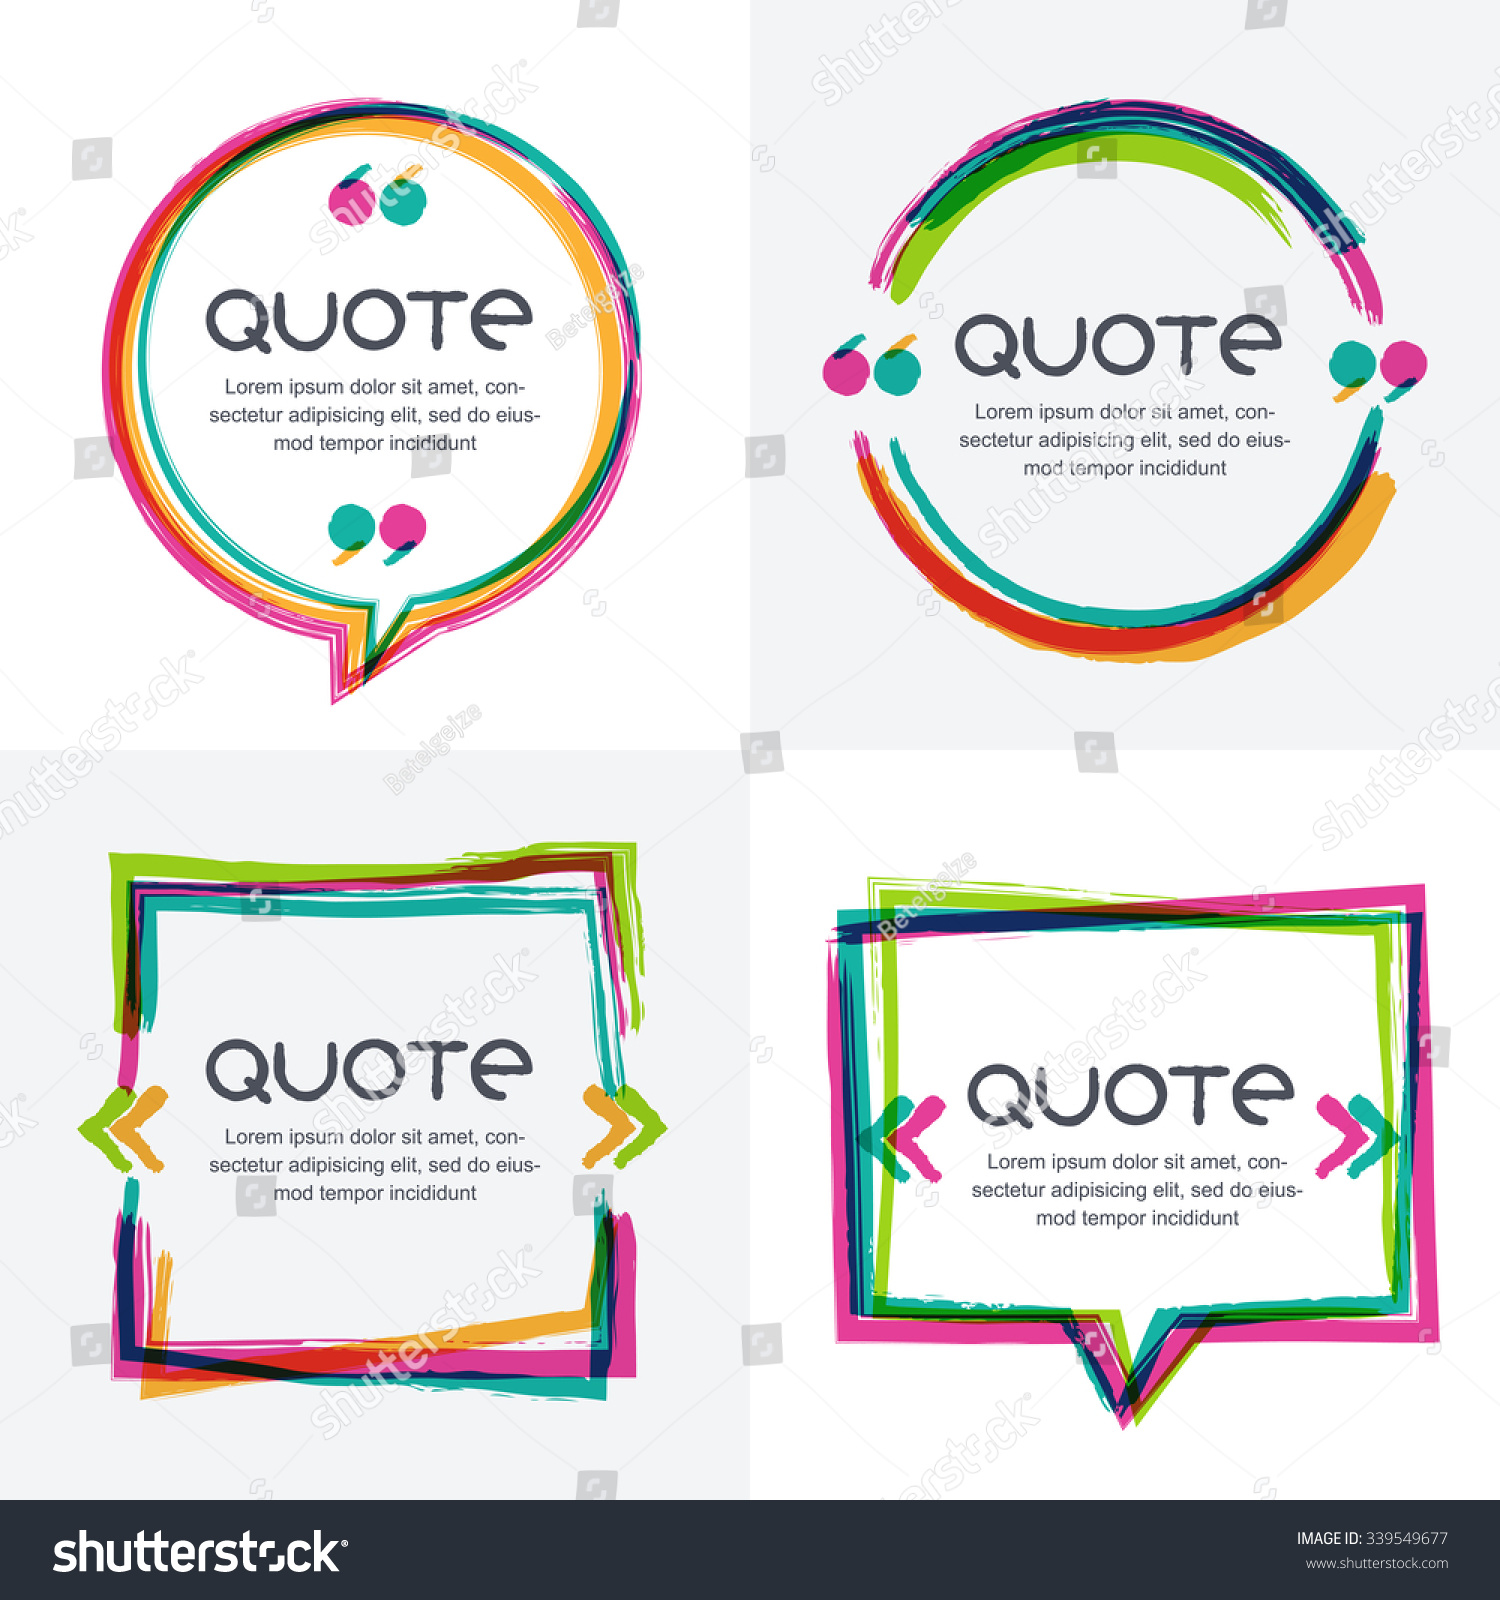 vector set quote forms template colorful のベクター画像素材